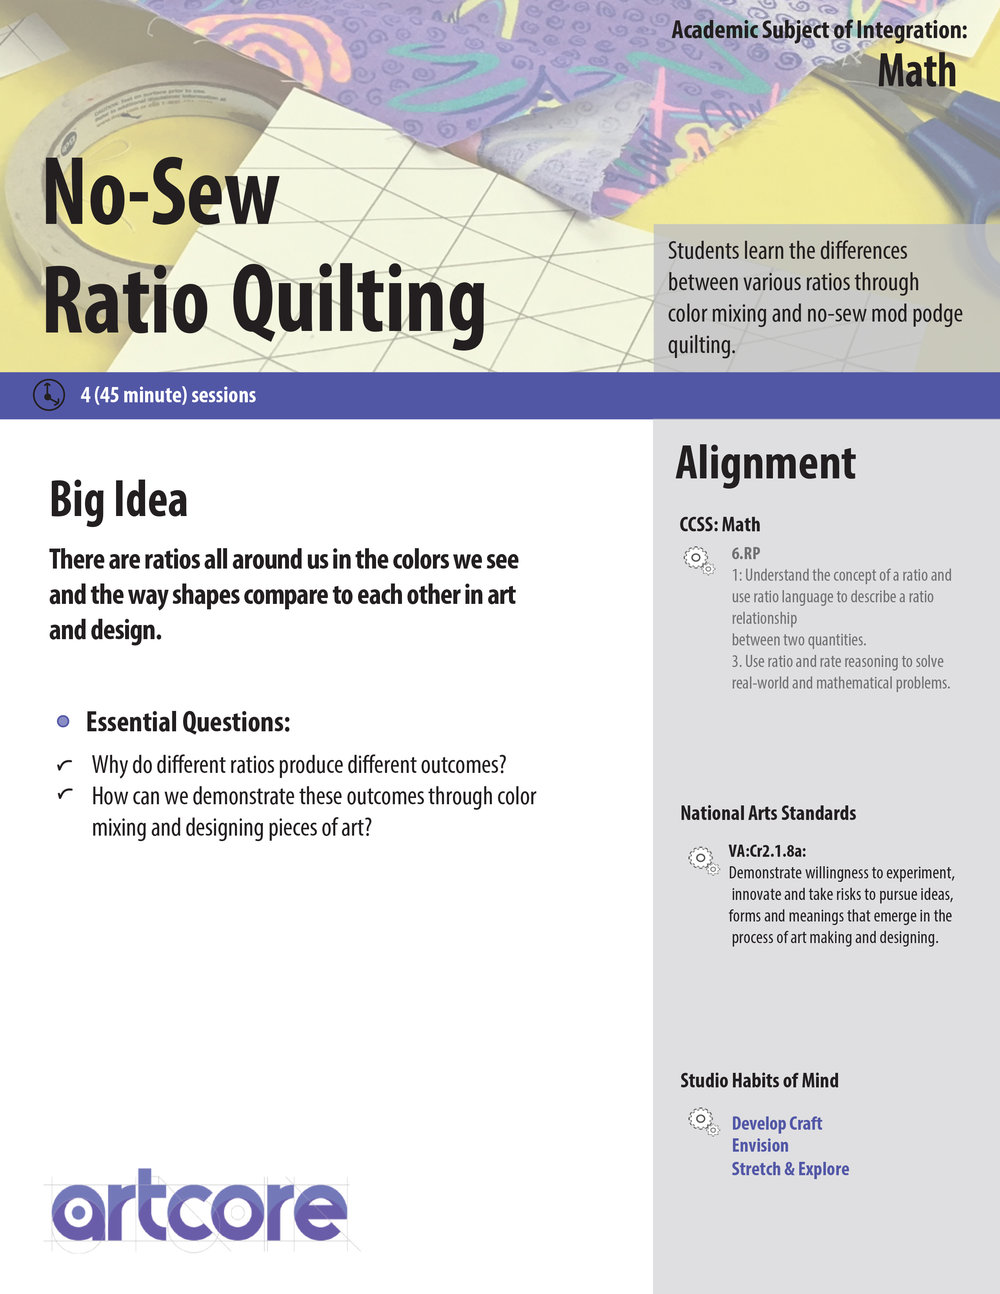 No-Sew Ratio Quilting_Action Plan.jpg